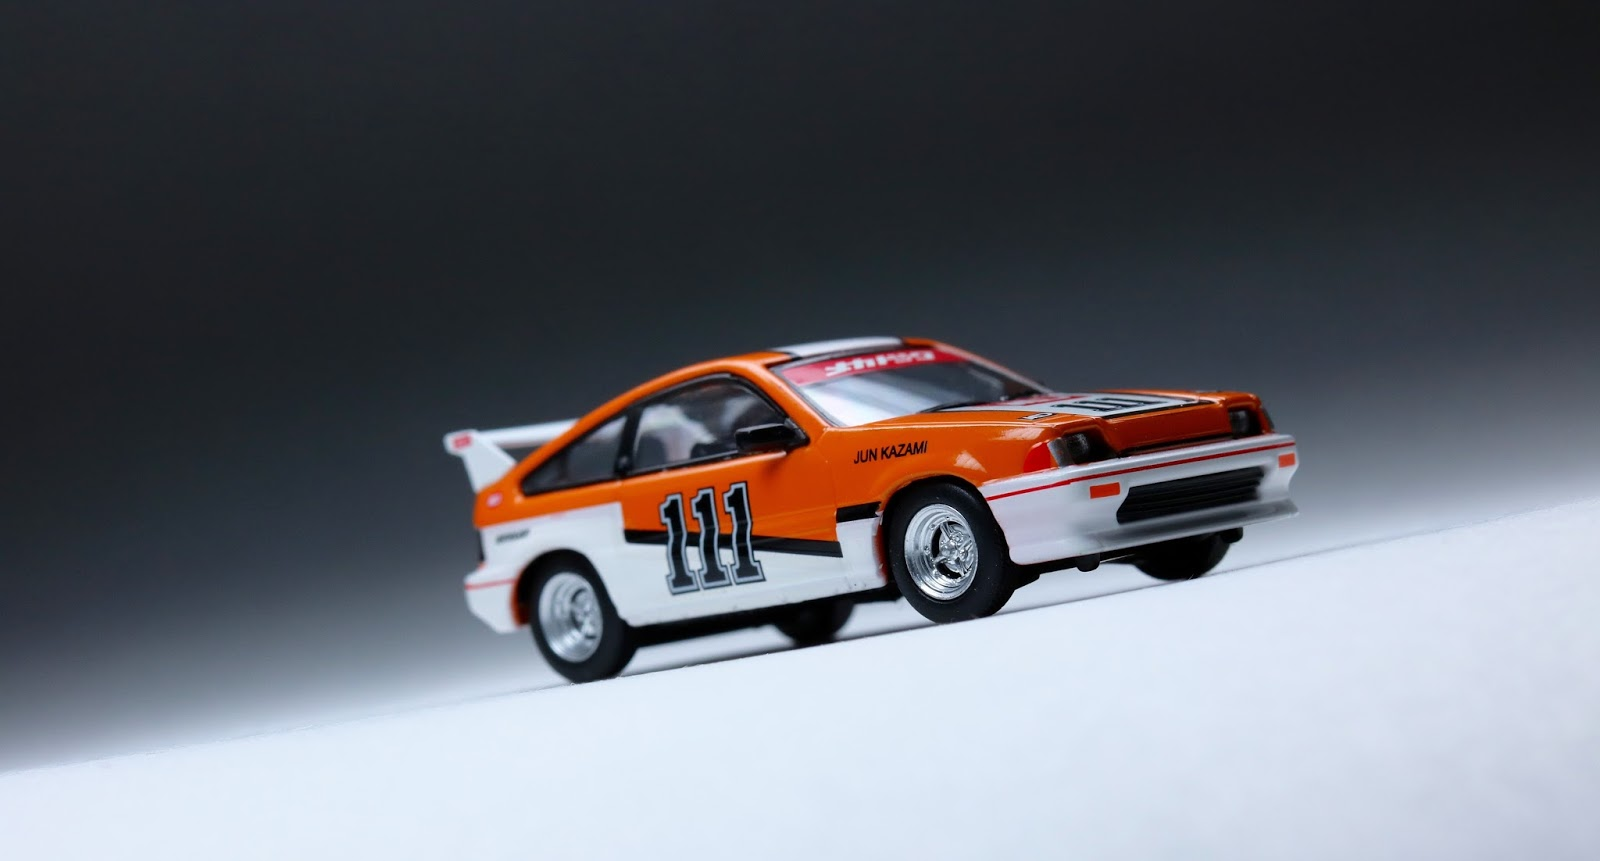 kyosho honda crx manual